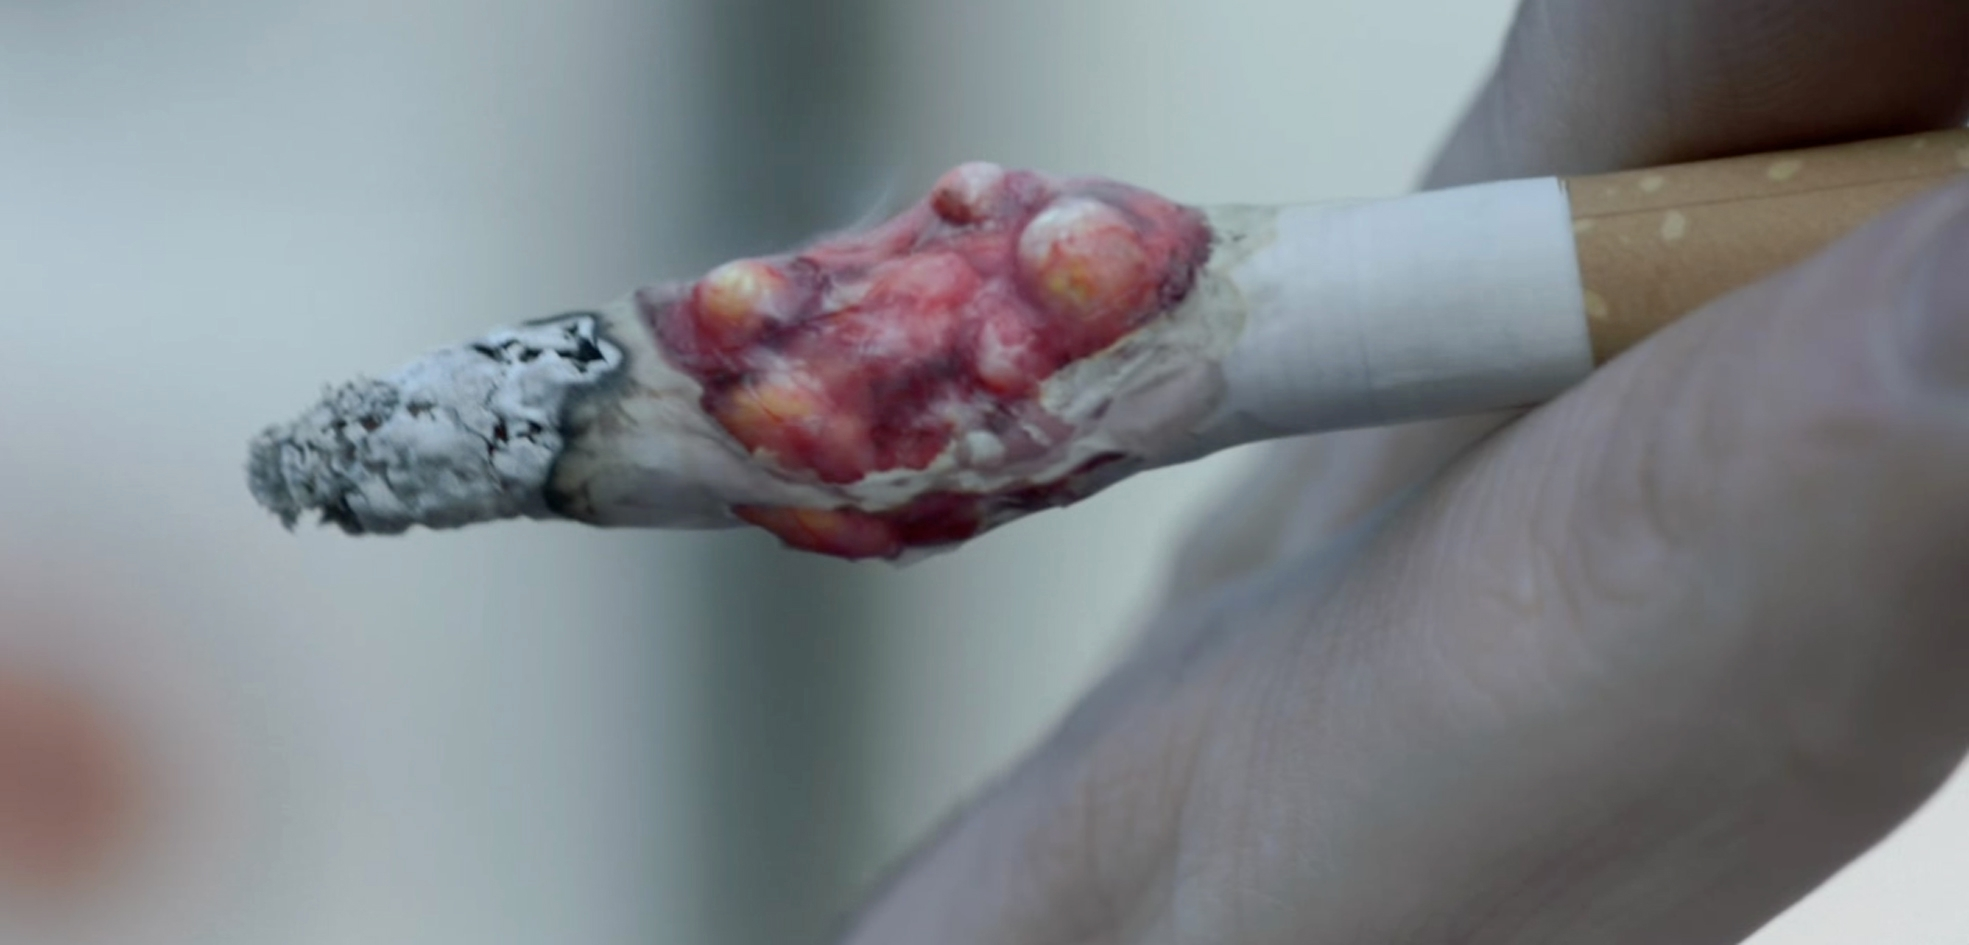 The hard hitting anti-smoking advert showing a tumour in a cigarette.